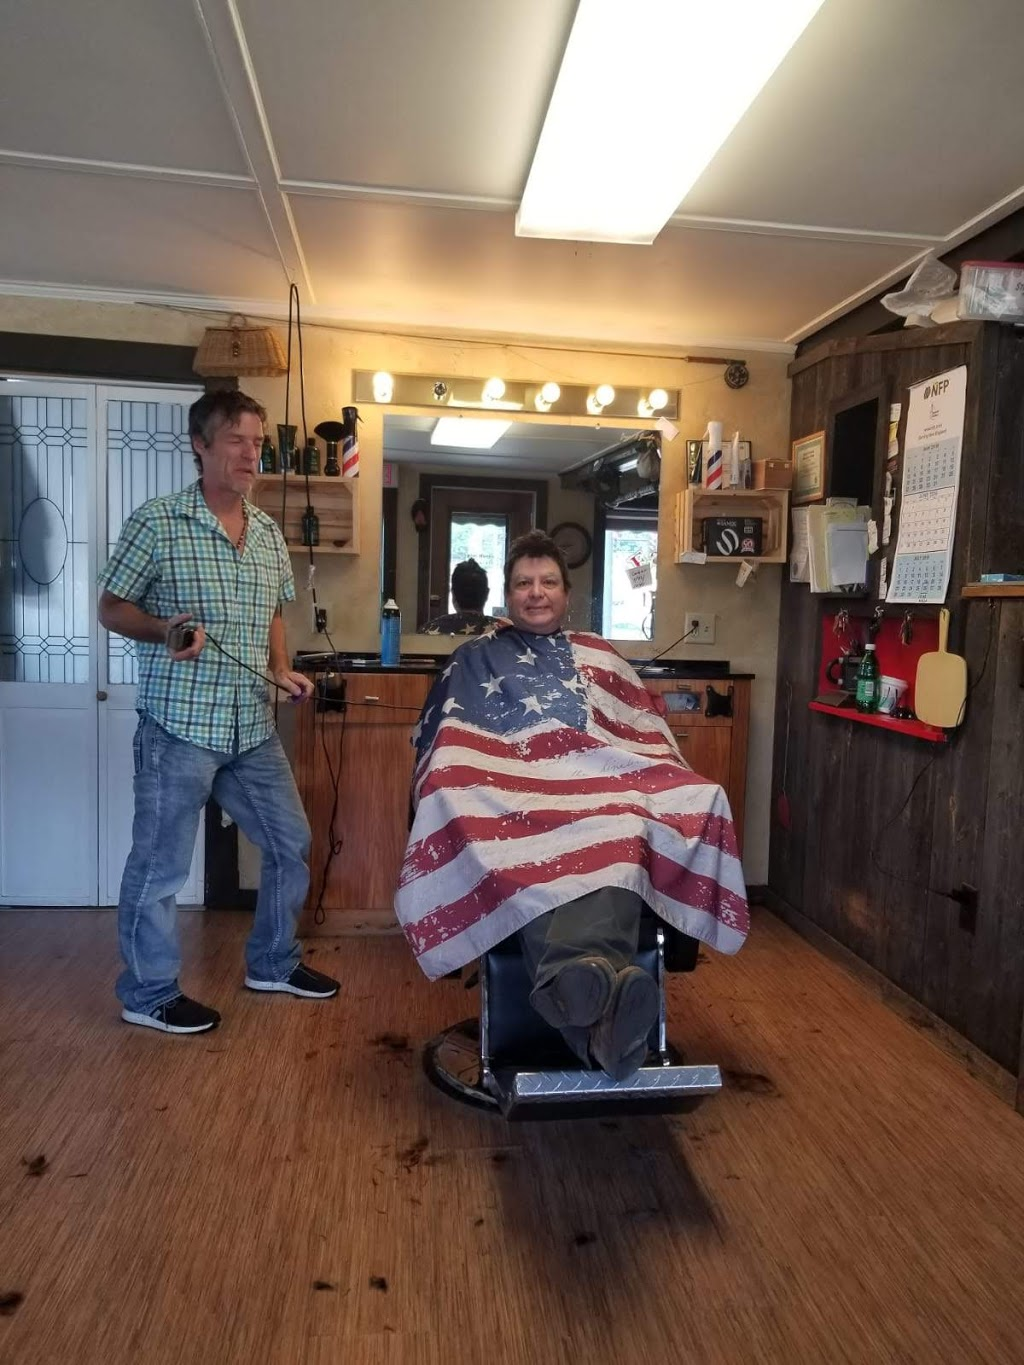 Eastside Barber Shop | hair care | 472 E Main St, Newport, VT 05855, USA | 8026732689 OR +1 802-673-2689